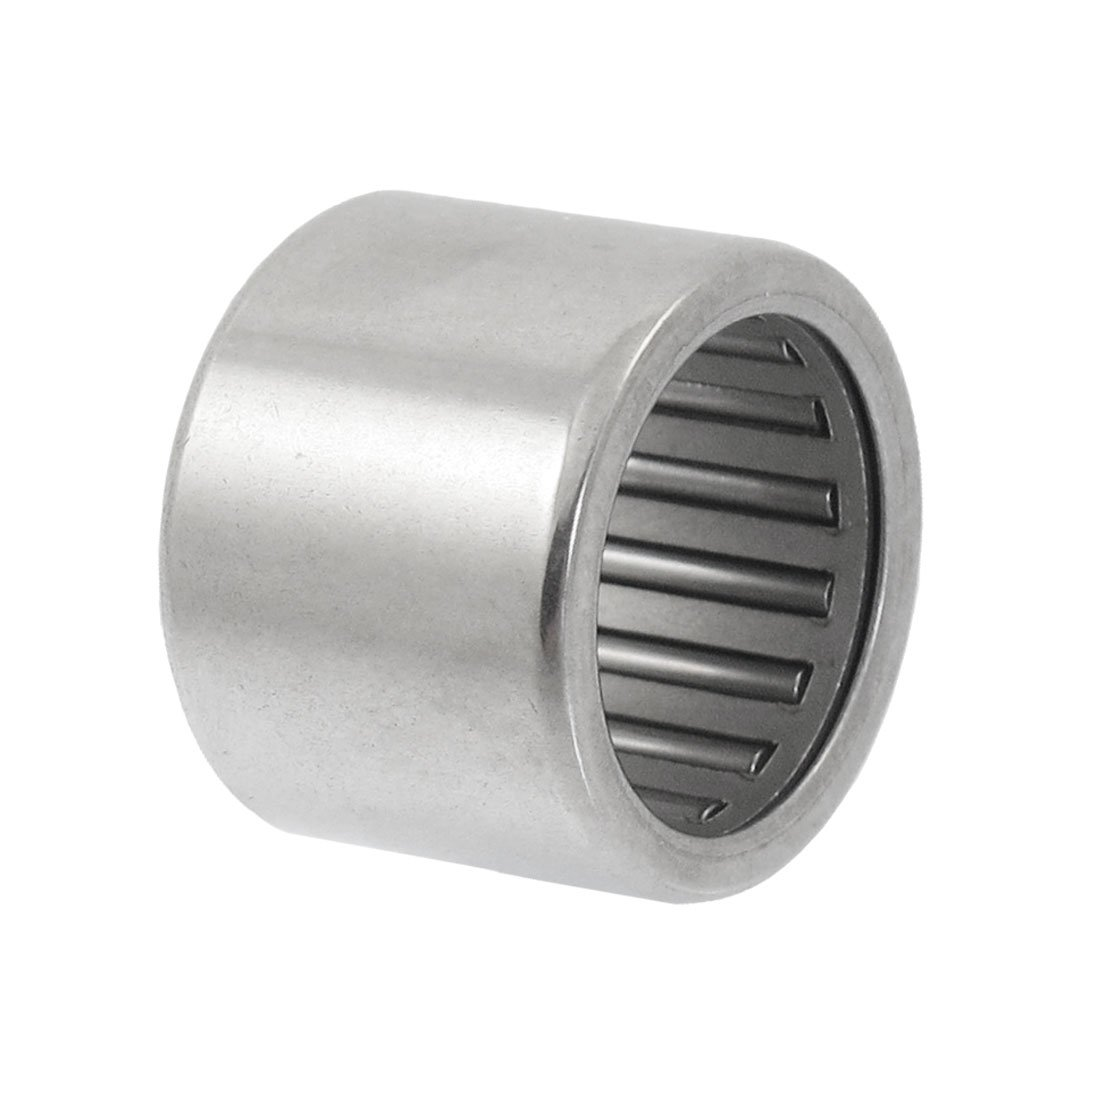 HK202620 20mm x 26mm x 20mm Drawn Cup Caged Drawn Cup Needle Roller Bearing Sourcingmap a12102200ux0335